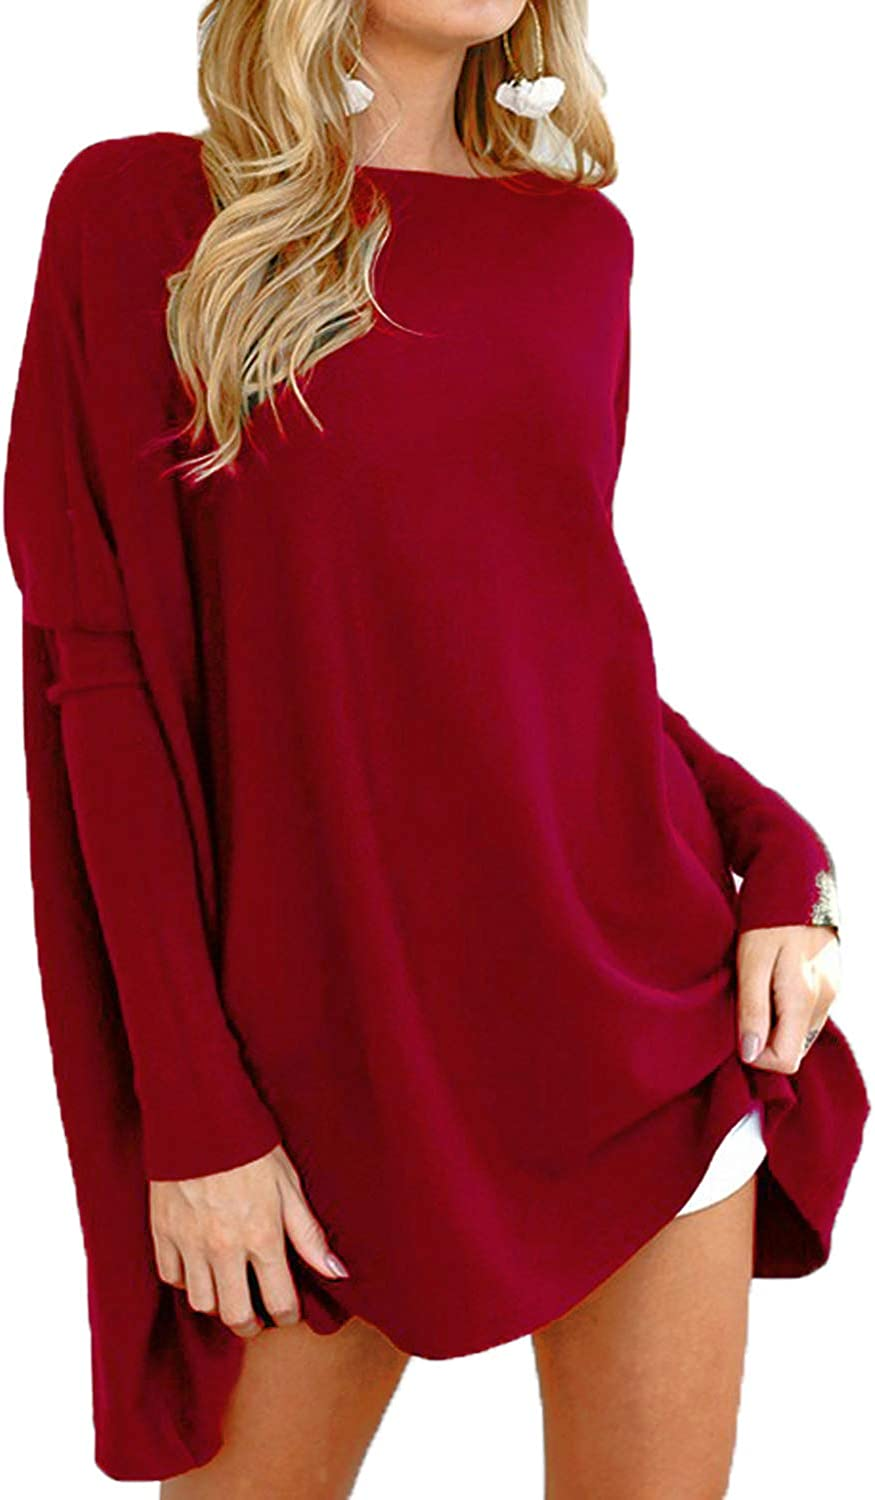 Green Velvet Top Long Sleeve Blouse Loose fit Tunic Shirt Corduroy High Low Scoop Neck with Choker Boho Christmas Clothes Women Clothing